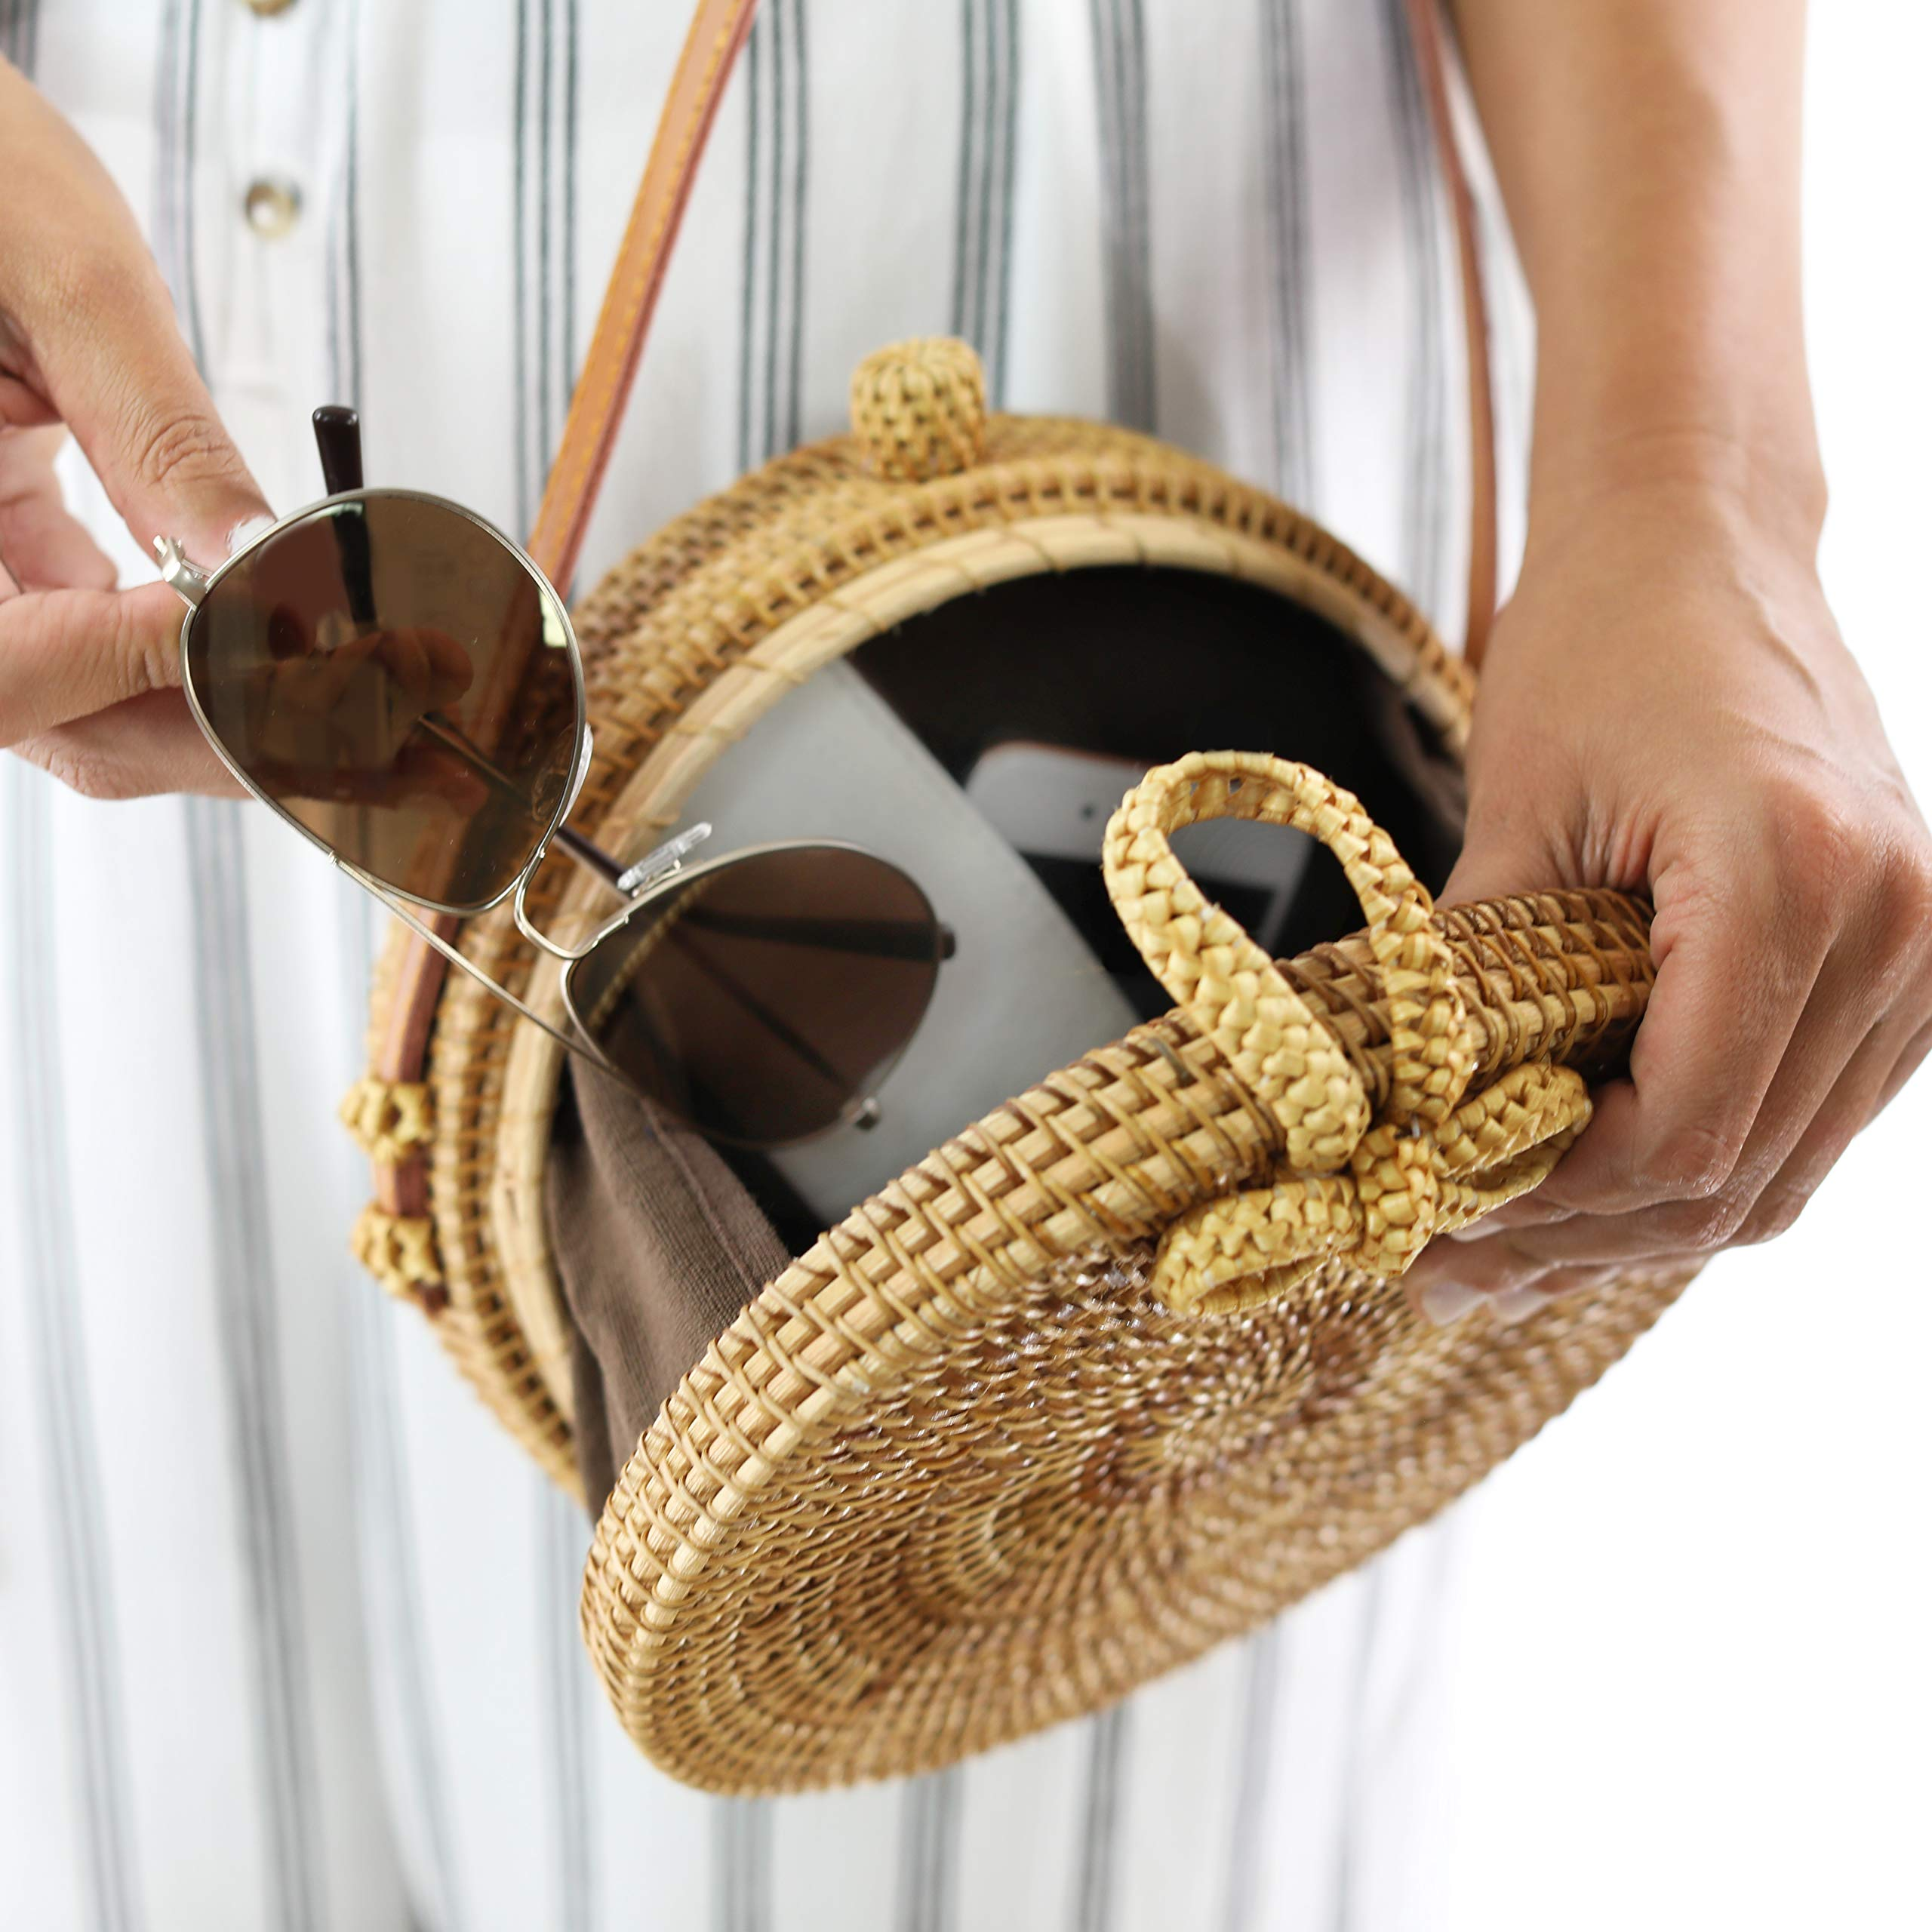 RATTAN NATURALS Handwoven Round Rattan Crossbody Bag| DELUXE EDITION | Round Straw Bag for Women | Genuine 100% Leather Shoulder straps | Straw purse For Women | Boho bag | Straw Handbag for Women by Rattan Naturals (Image #8)